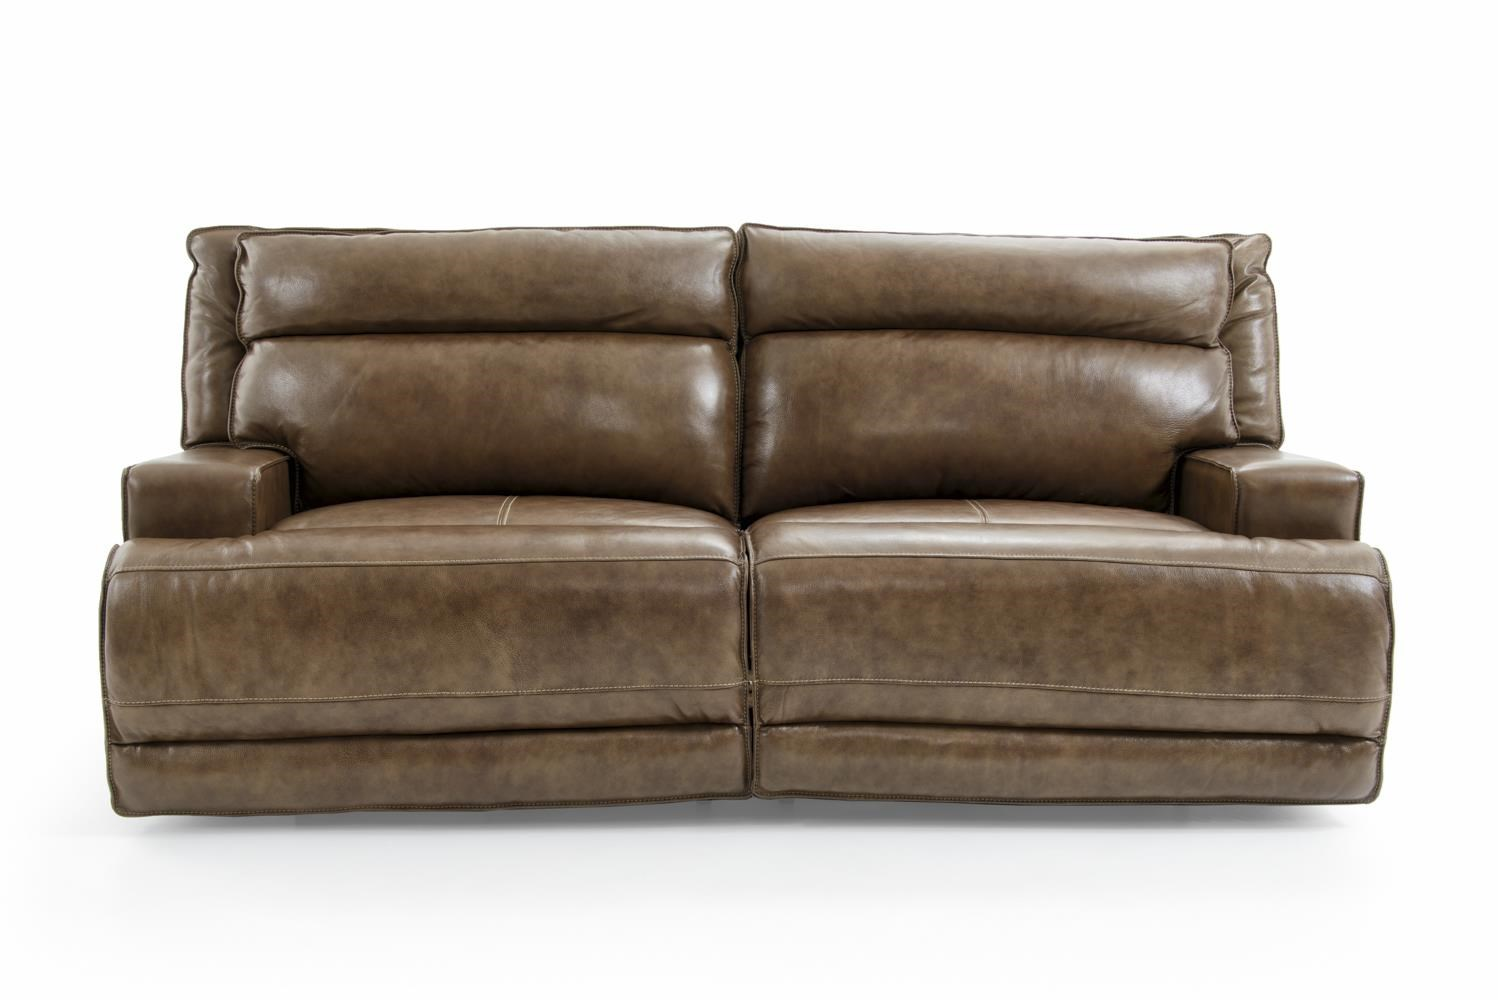 Contemporary Electric Motion Sofa with Track Arms and USB Port